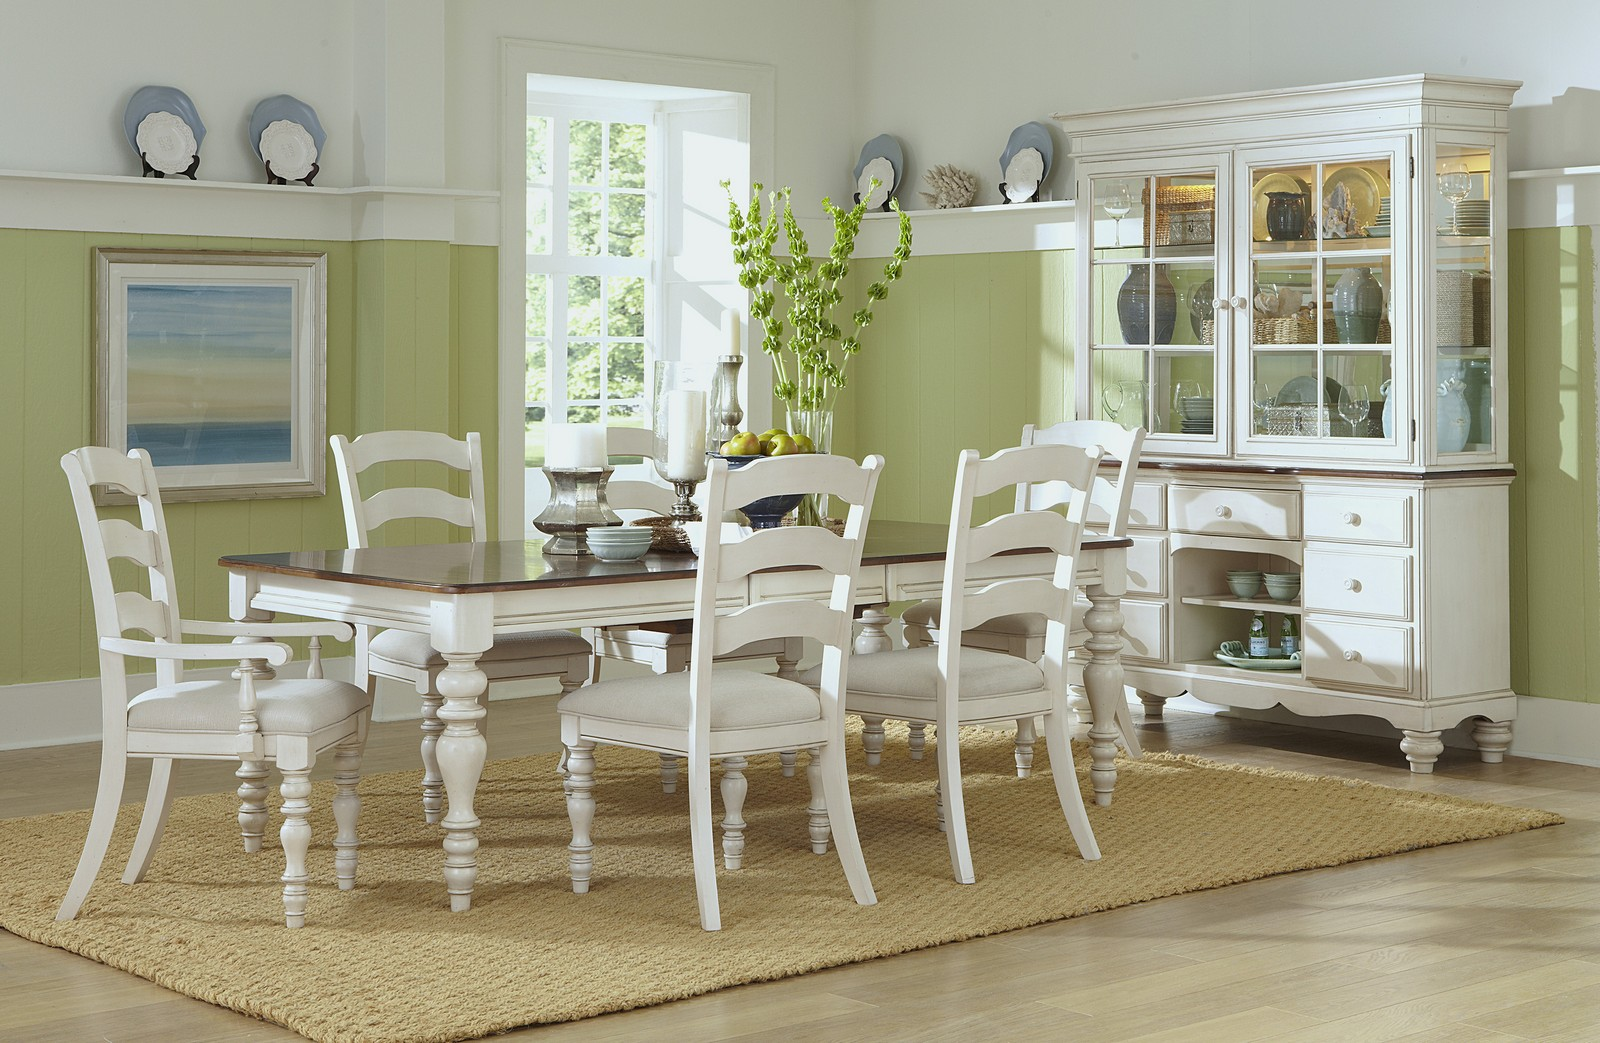 Charming Hillsdale Pine Island 7 PC Dining Set With Ladder Back Chairs   Old White